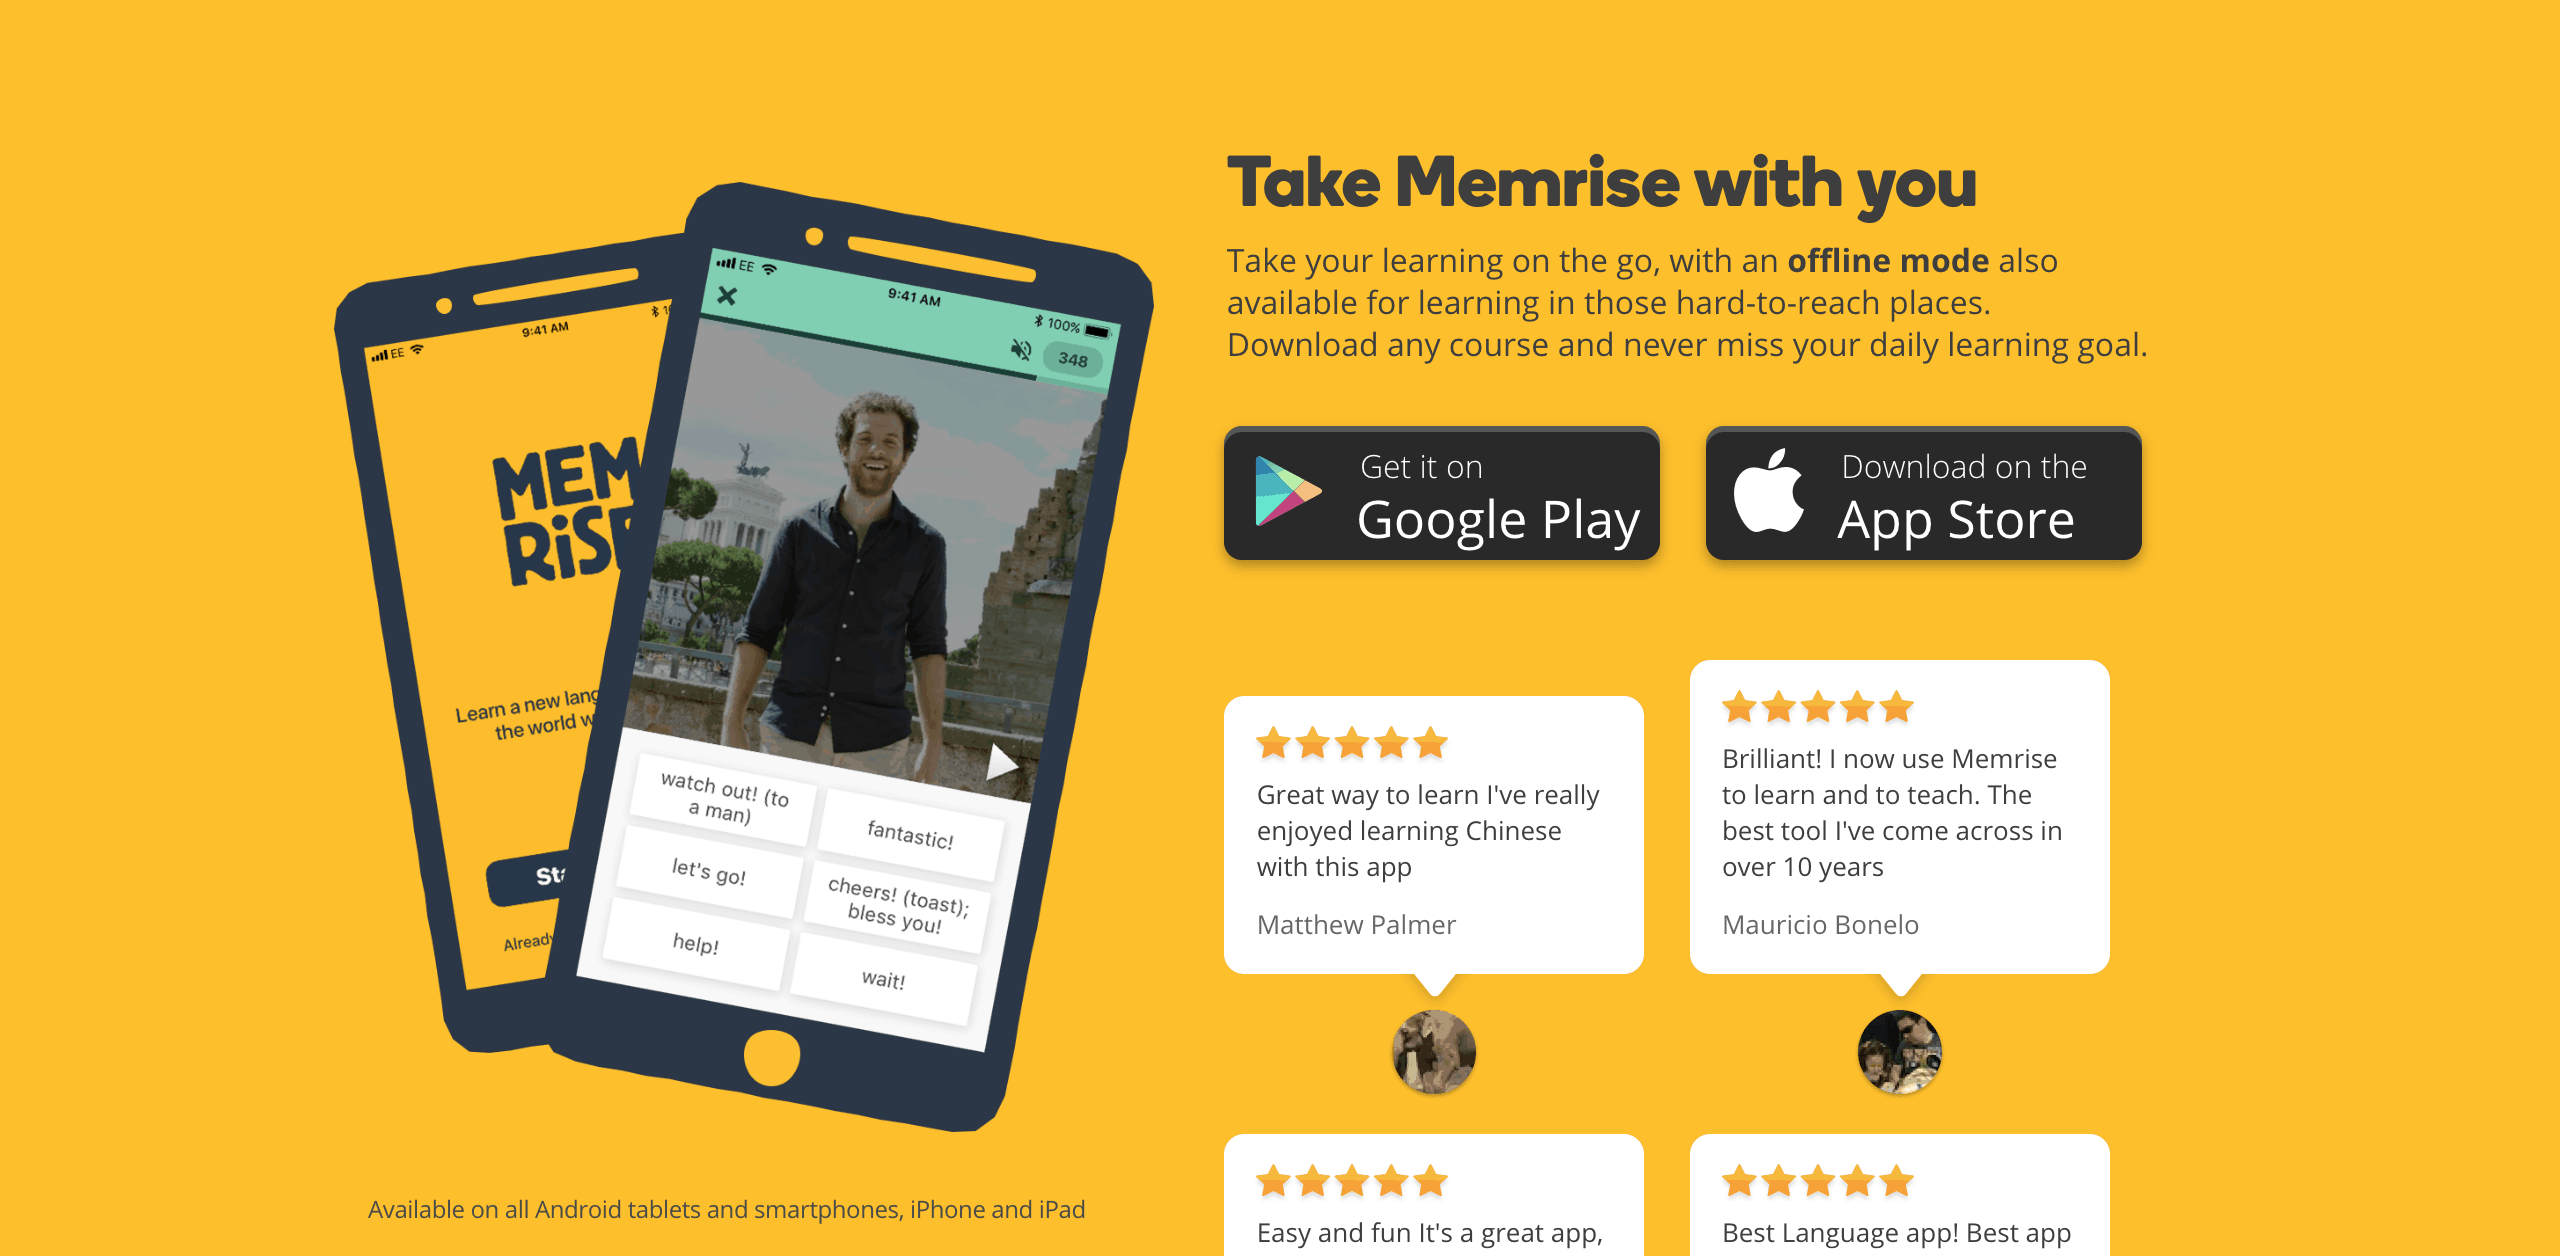 Two phones against a yellow background with information about the Memrise app written in black.